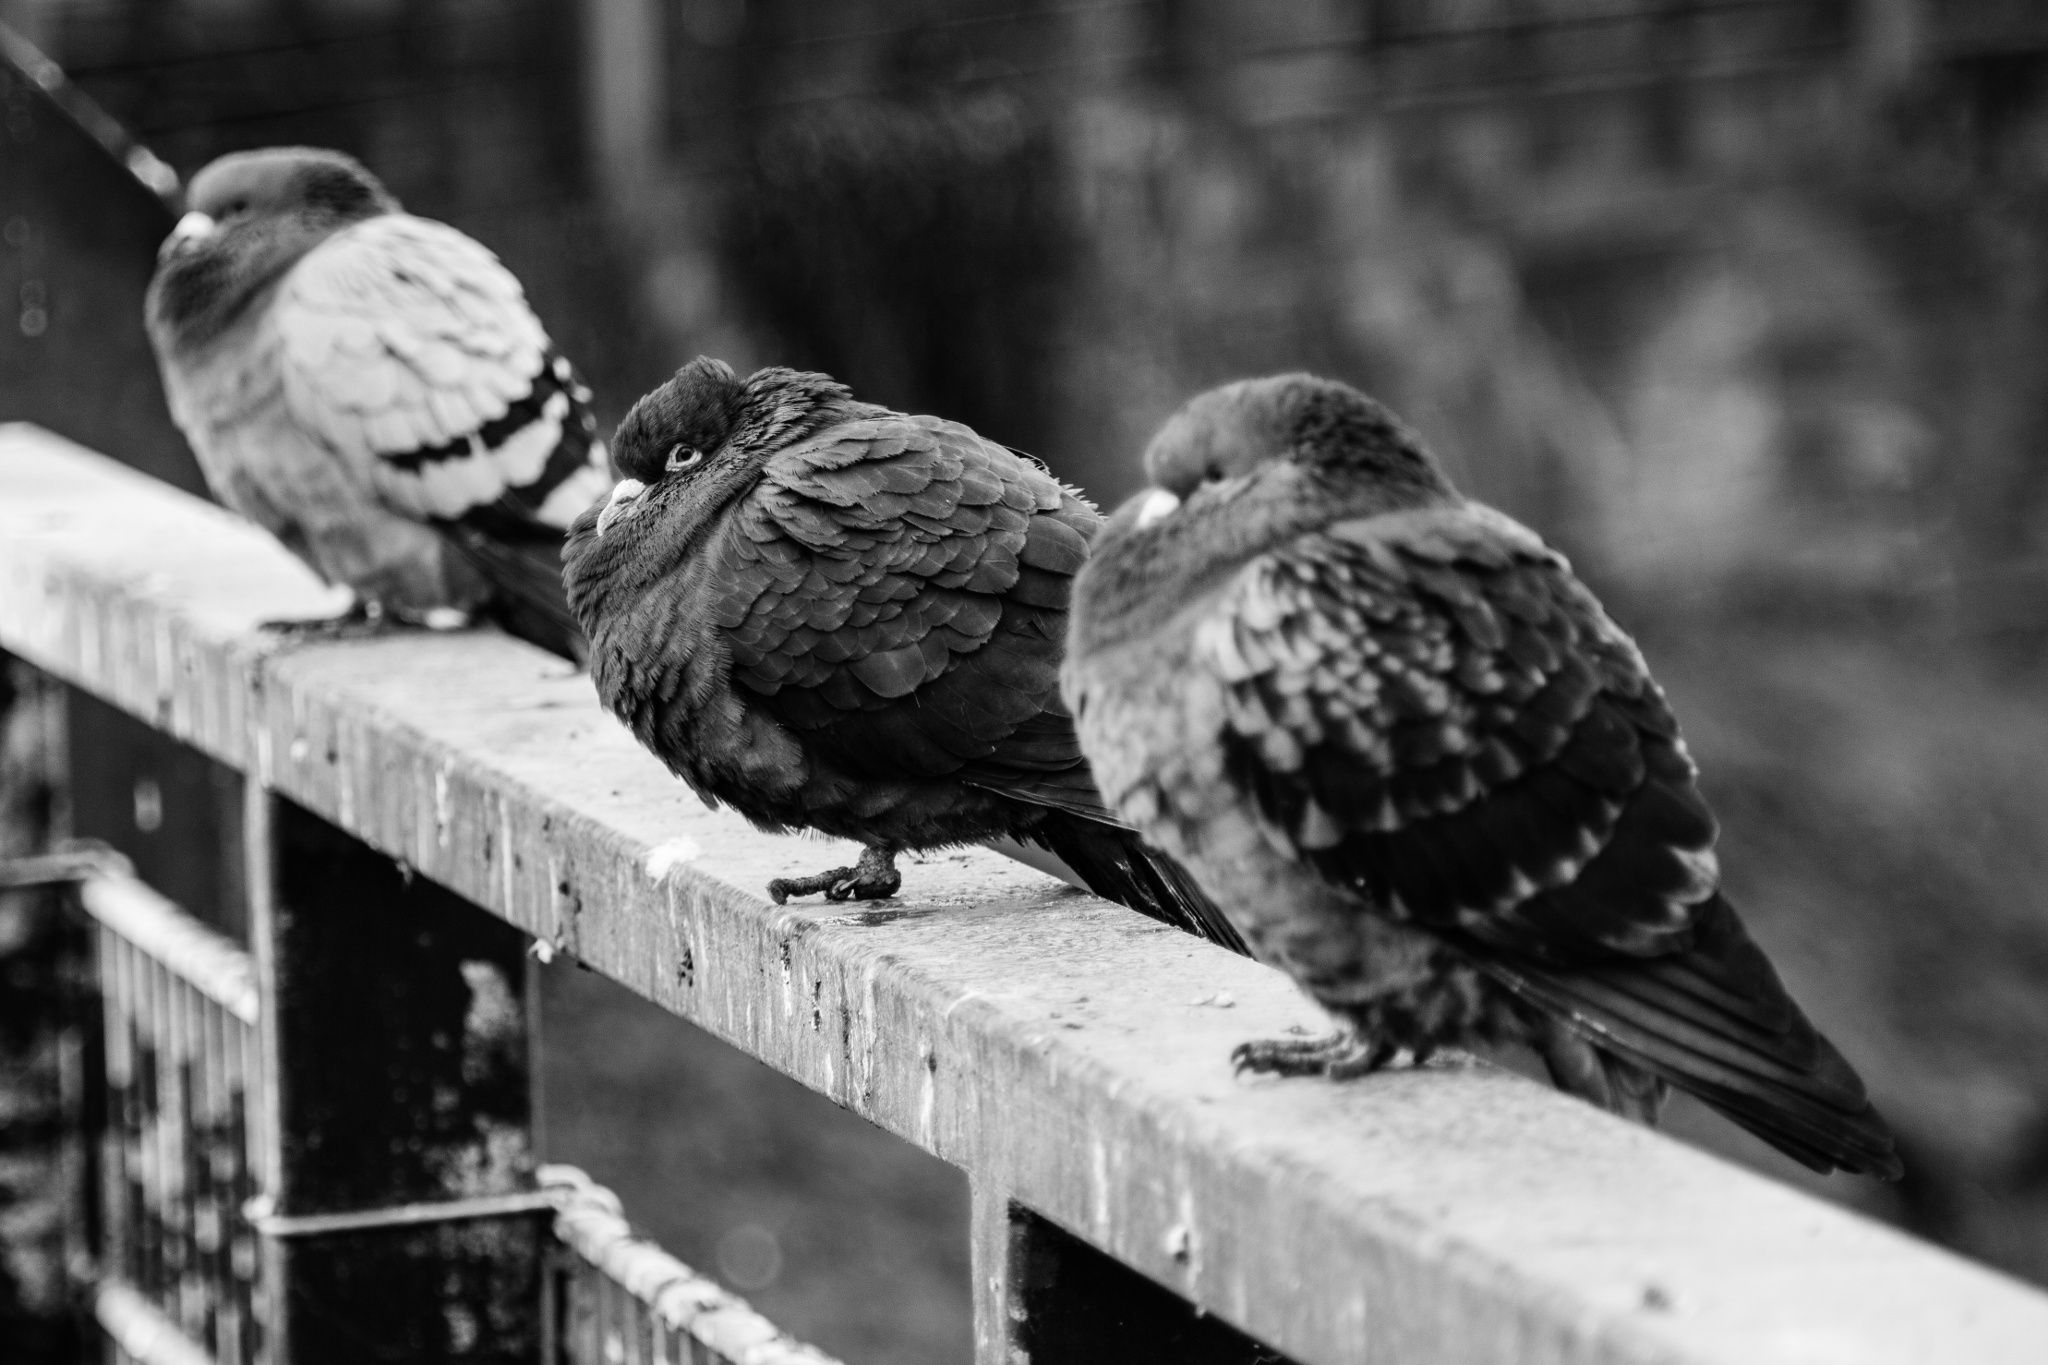 Pigeons on a Fence by Sebastian Schmidt on 500px